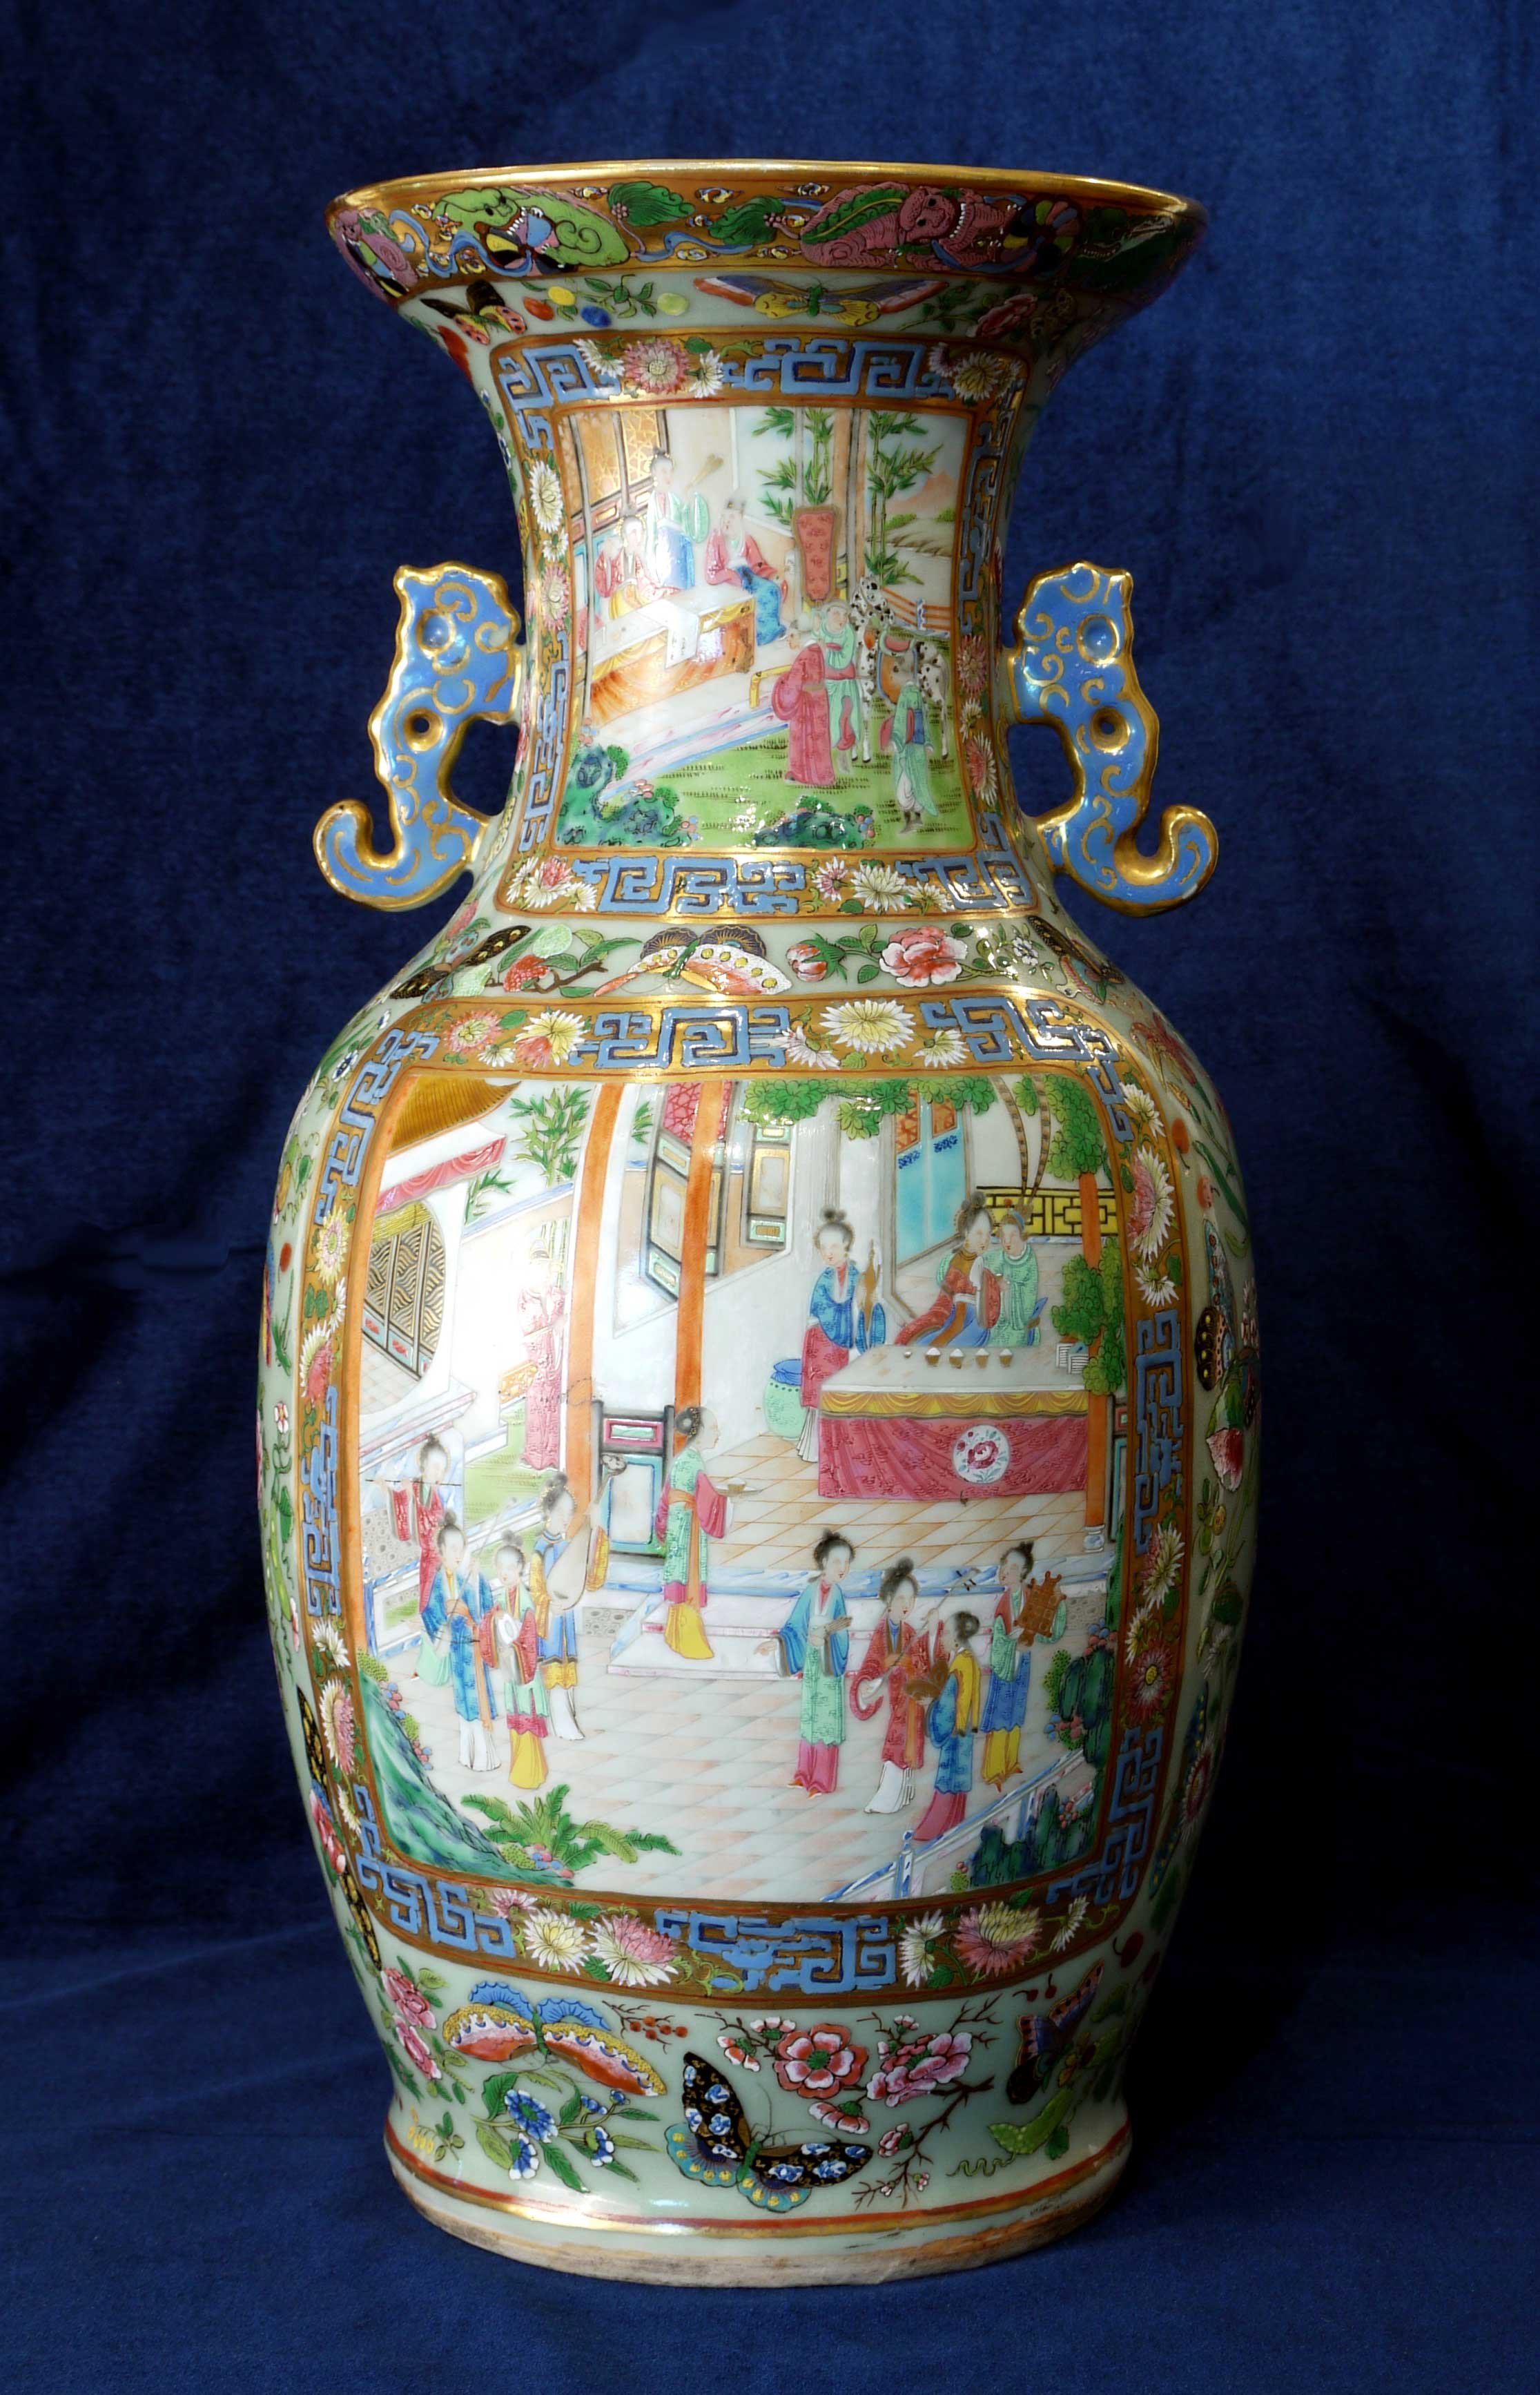 Famille rose mandarin palace vase at pocock fine art antiques click for a higher resolution image in a new window reviewsmspy